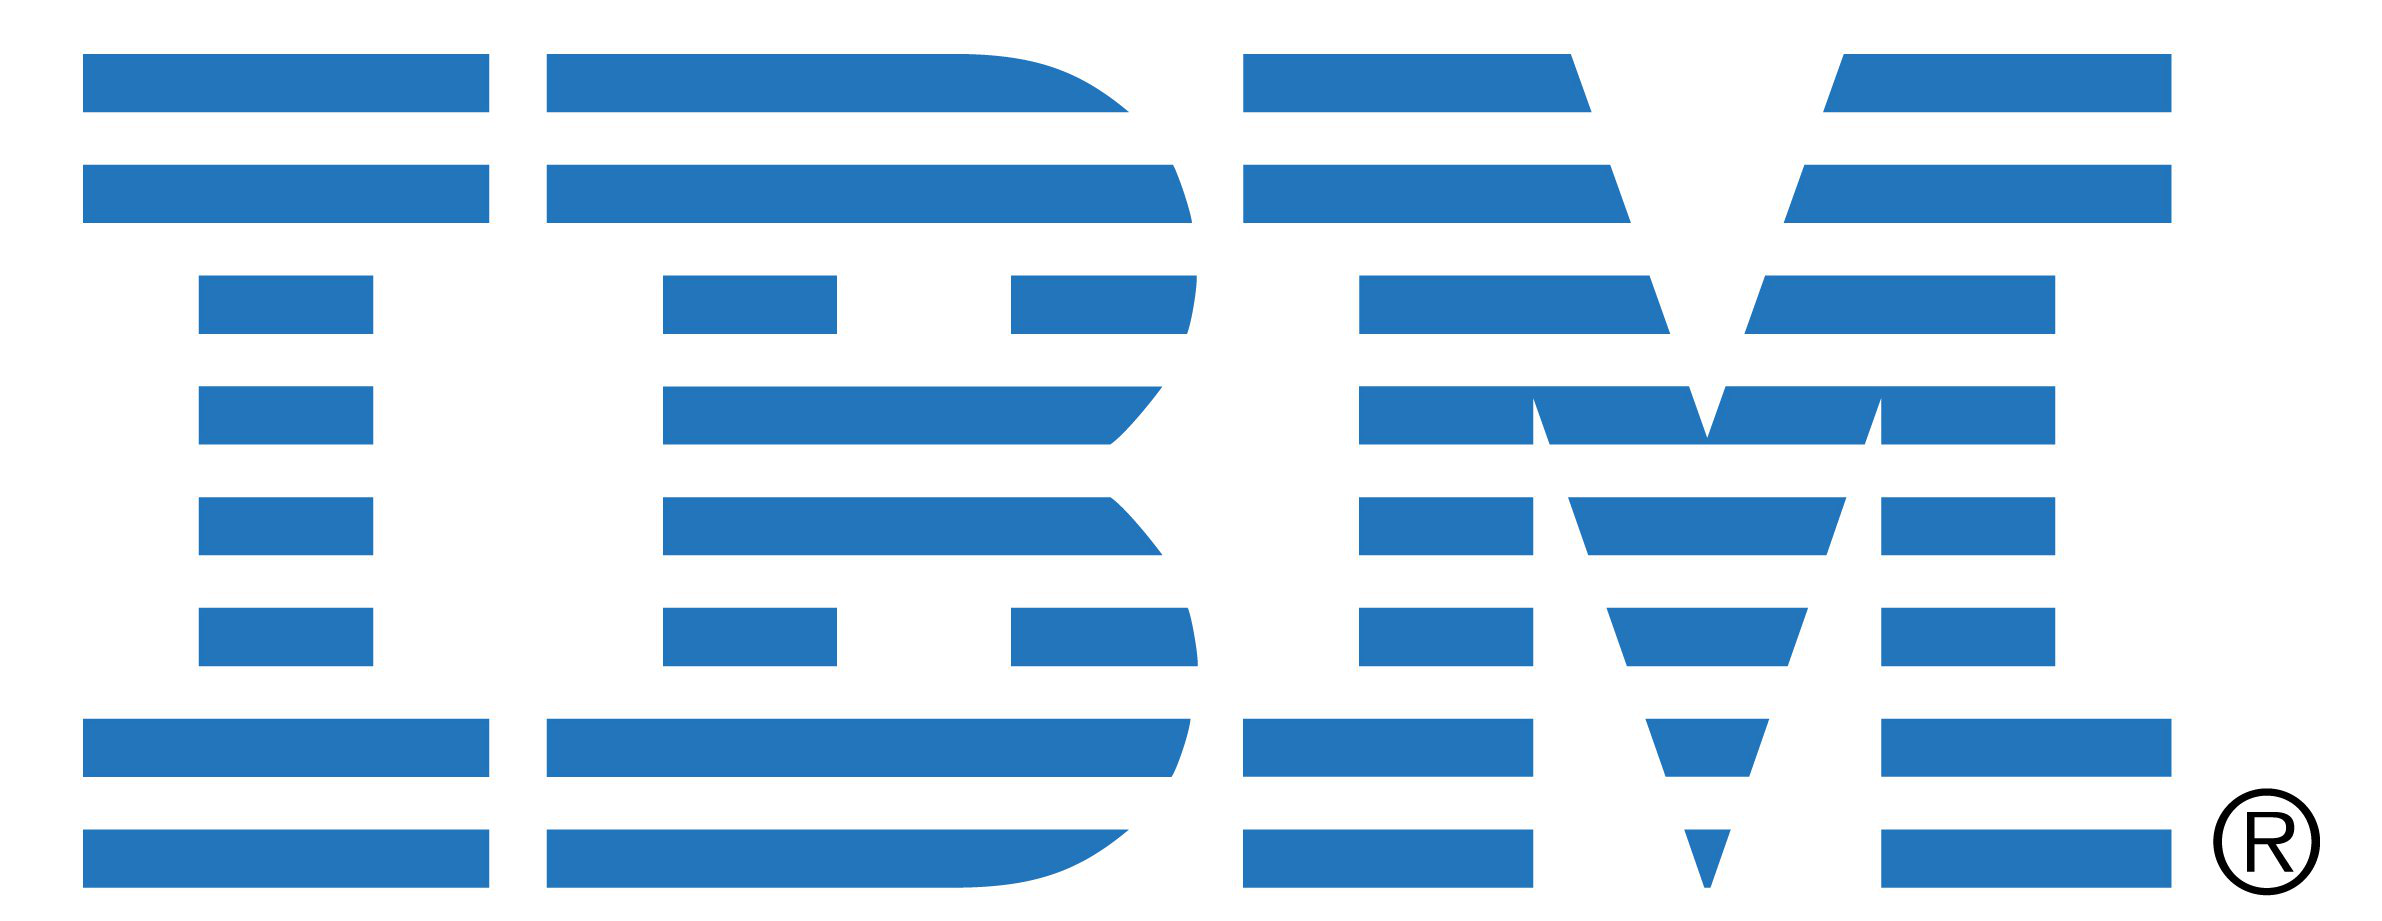 Developers to learn more about Spark, Scala and other open-source languages  through workshops, tutorials and leadership talks - Ibm PNG